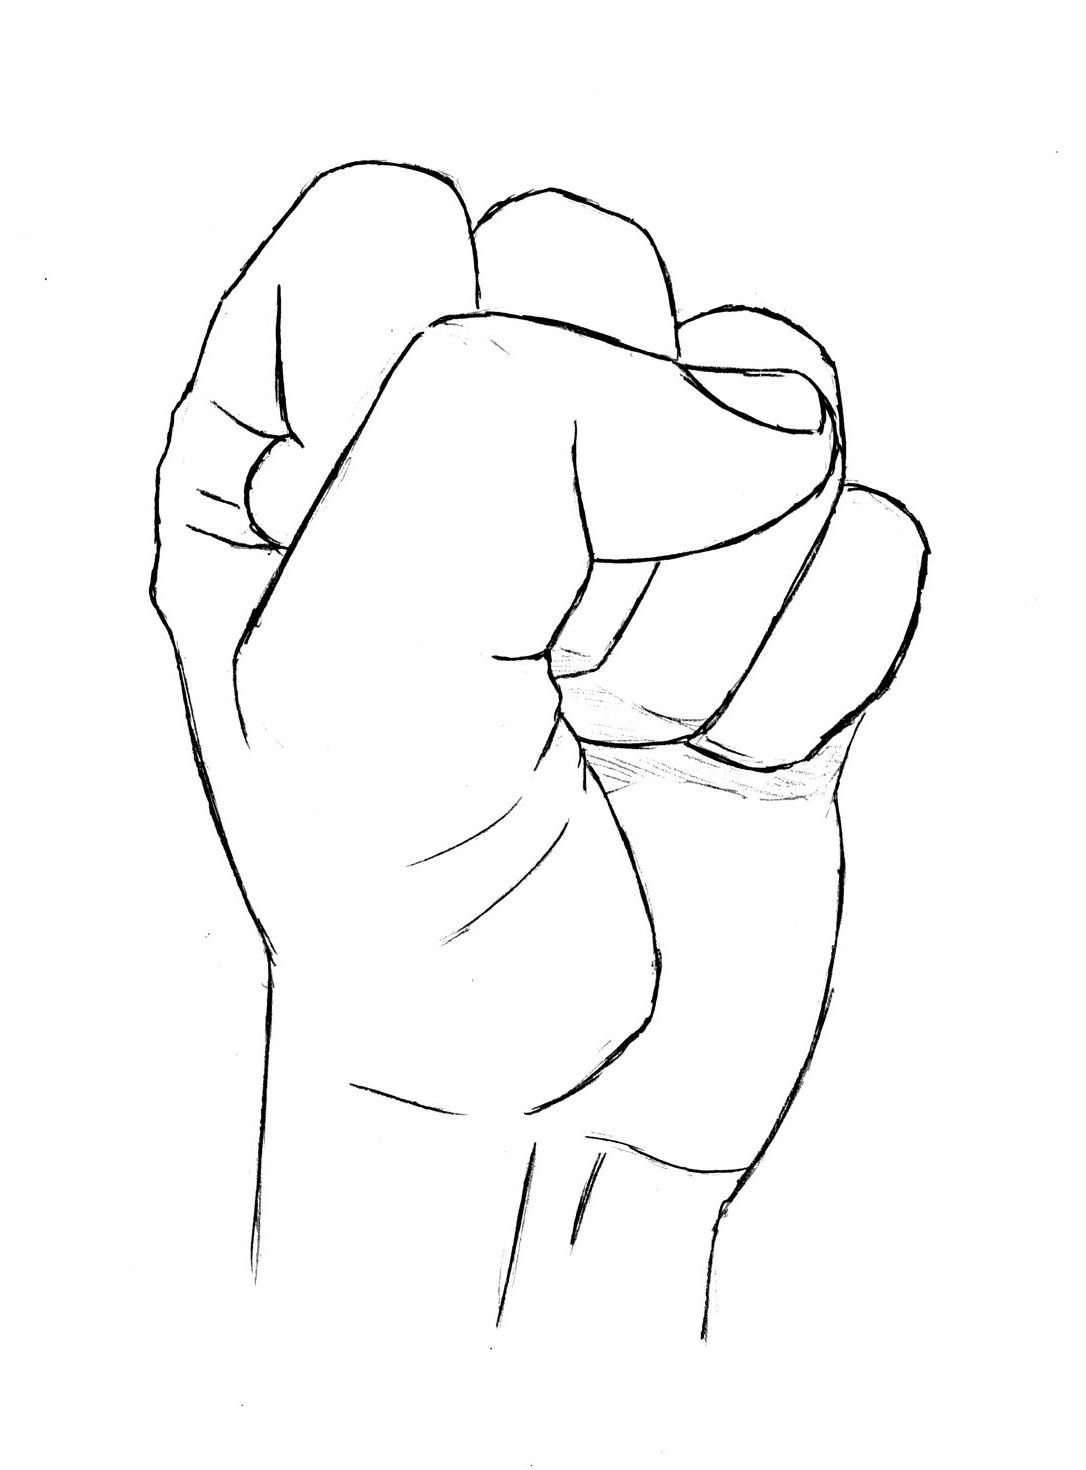 How To Draw A Hand Clenched Fist And Open Palm Drawing Fist